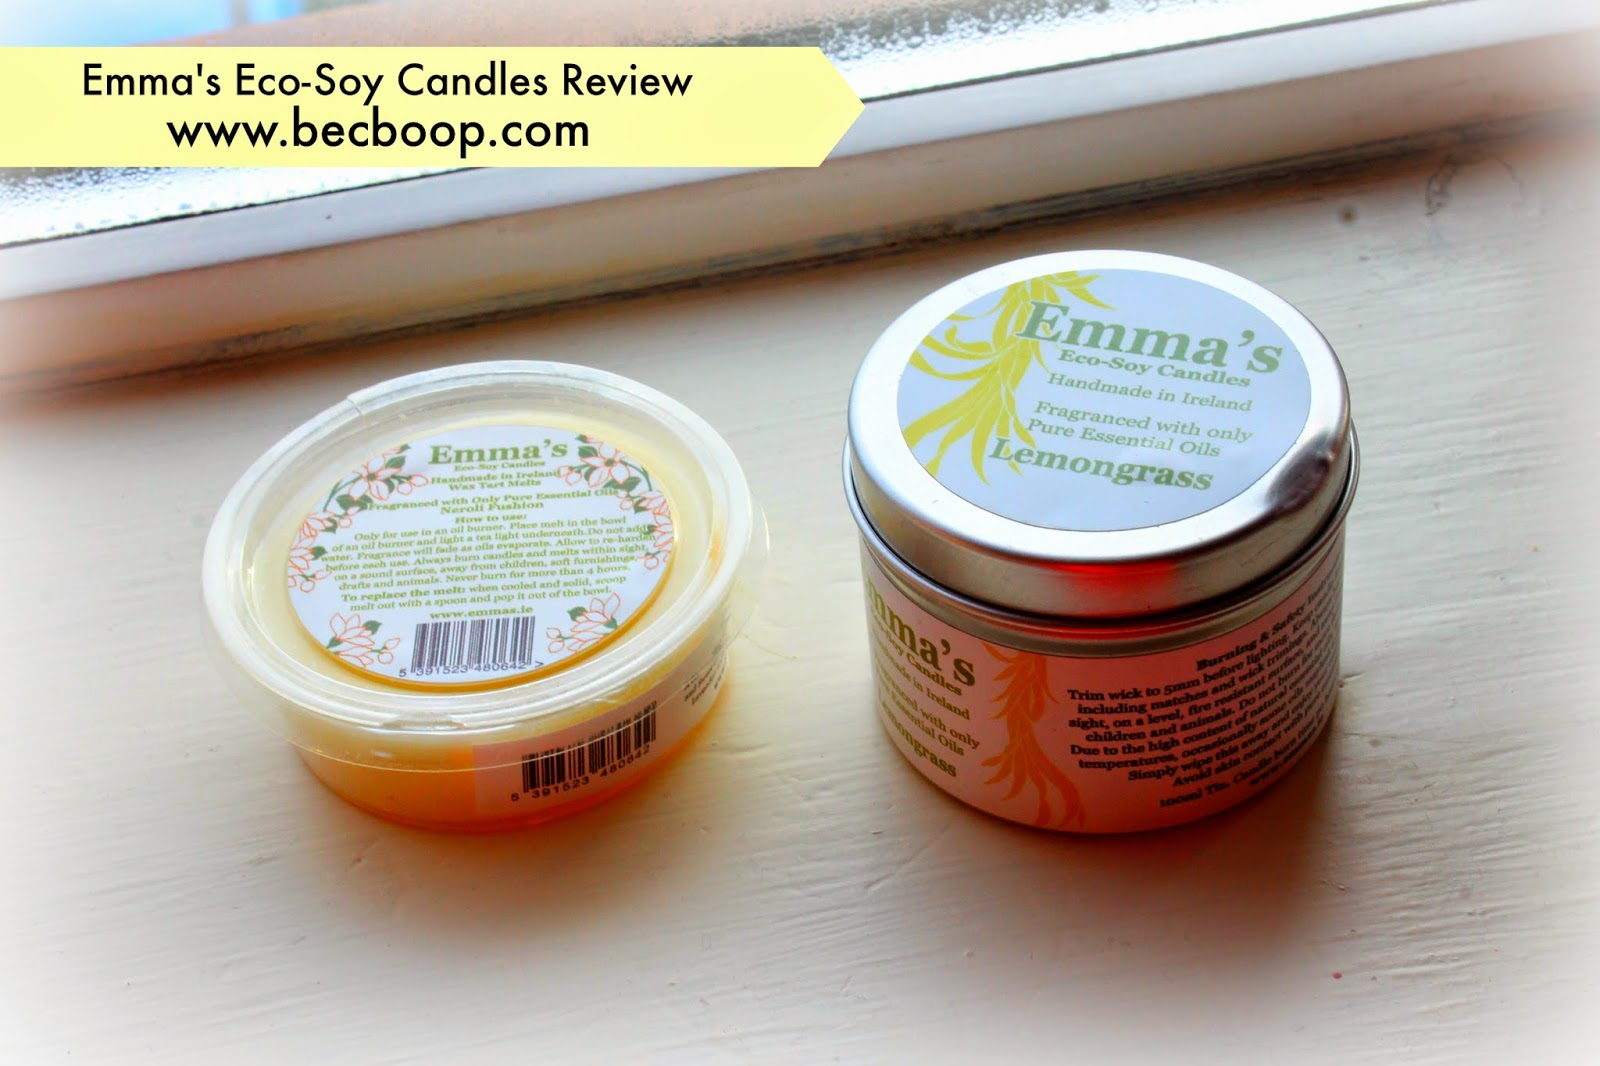 Emma's Eco-Soy Candles blog review